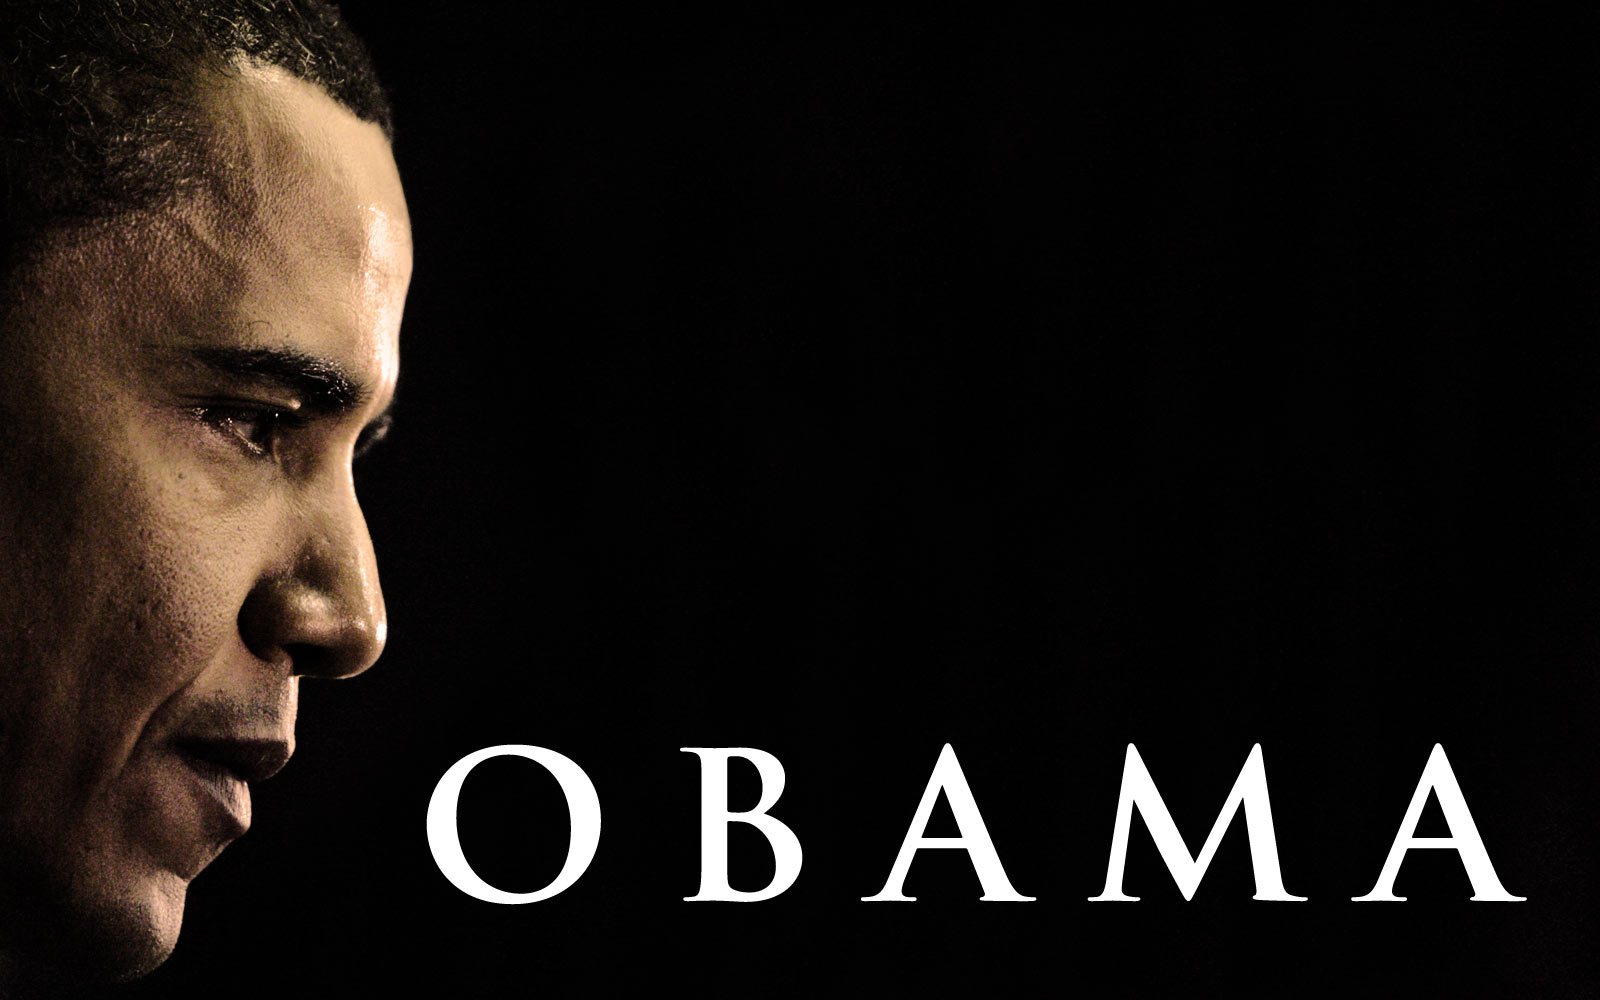 president barack obama The 44th president of the united states, author and the most popular person in the world, barack hussein obama ii, has an estimated net worth of $40 million.